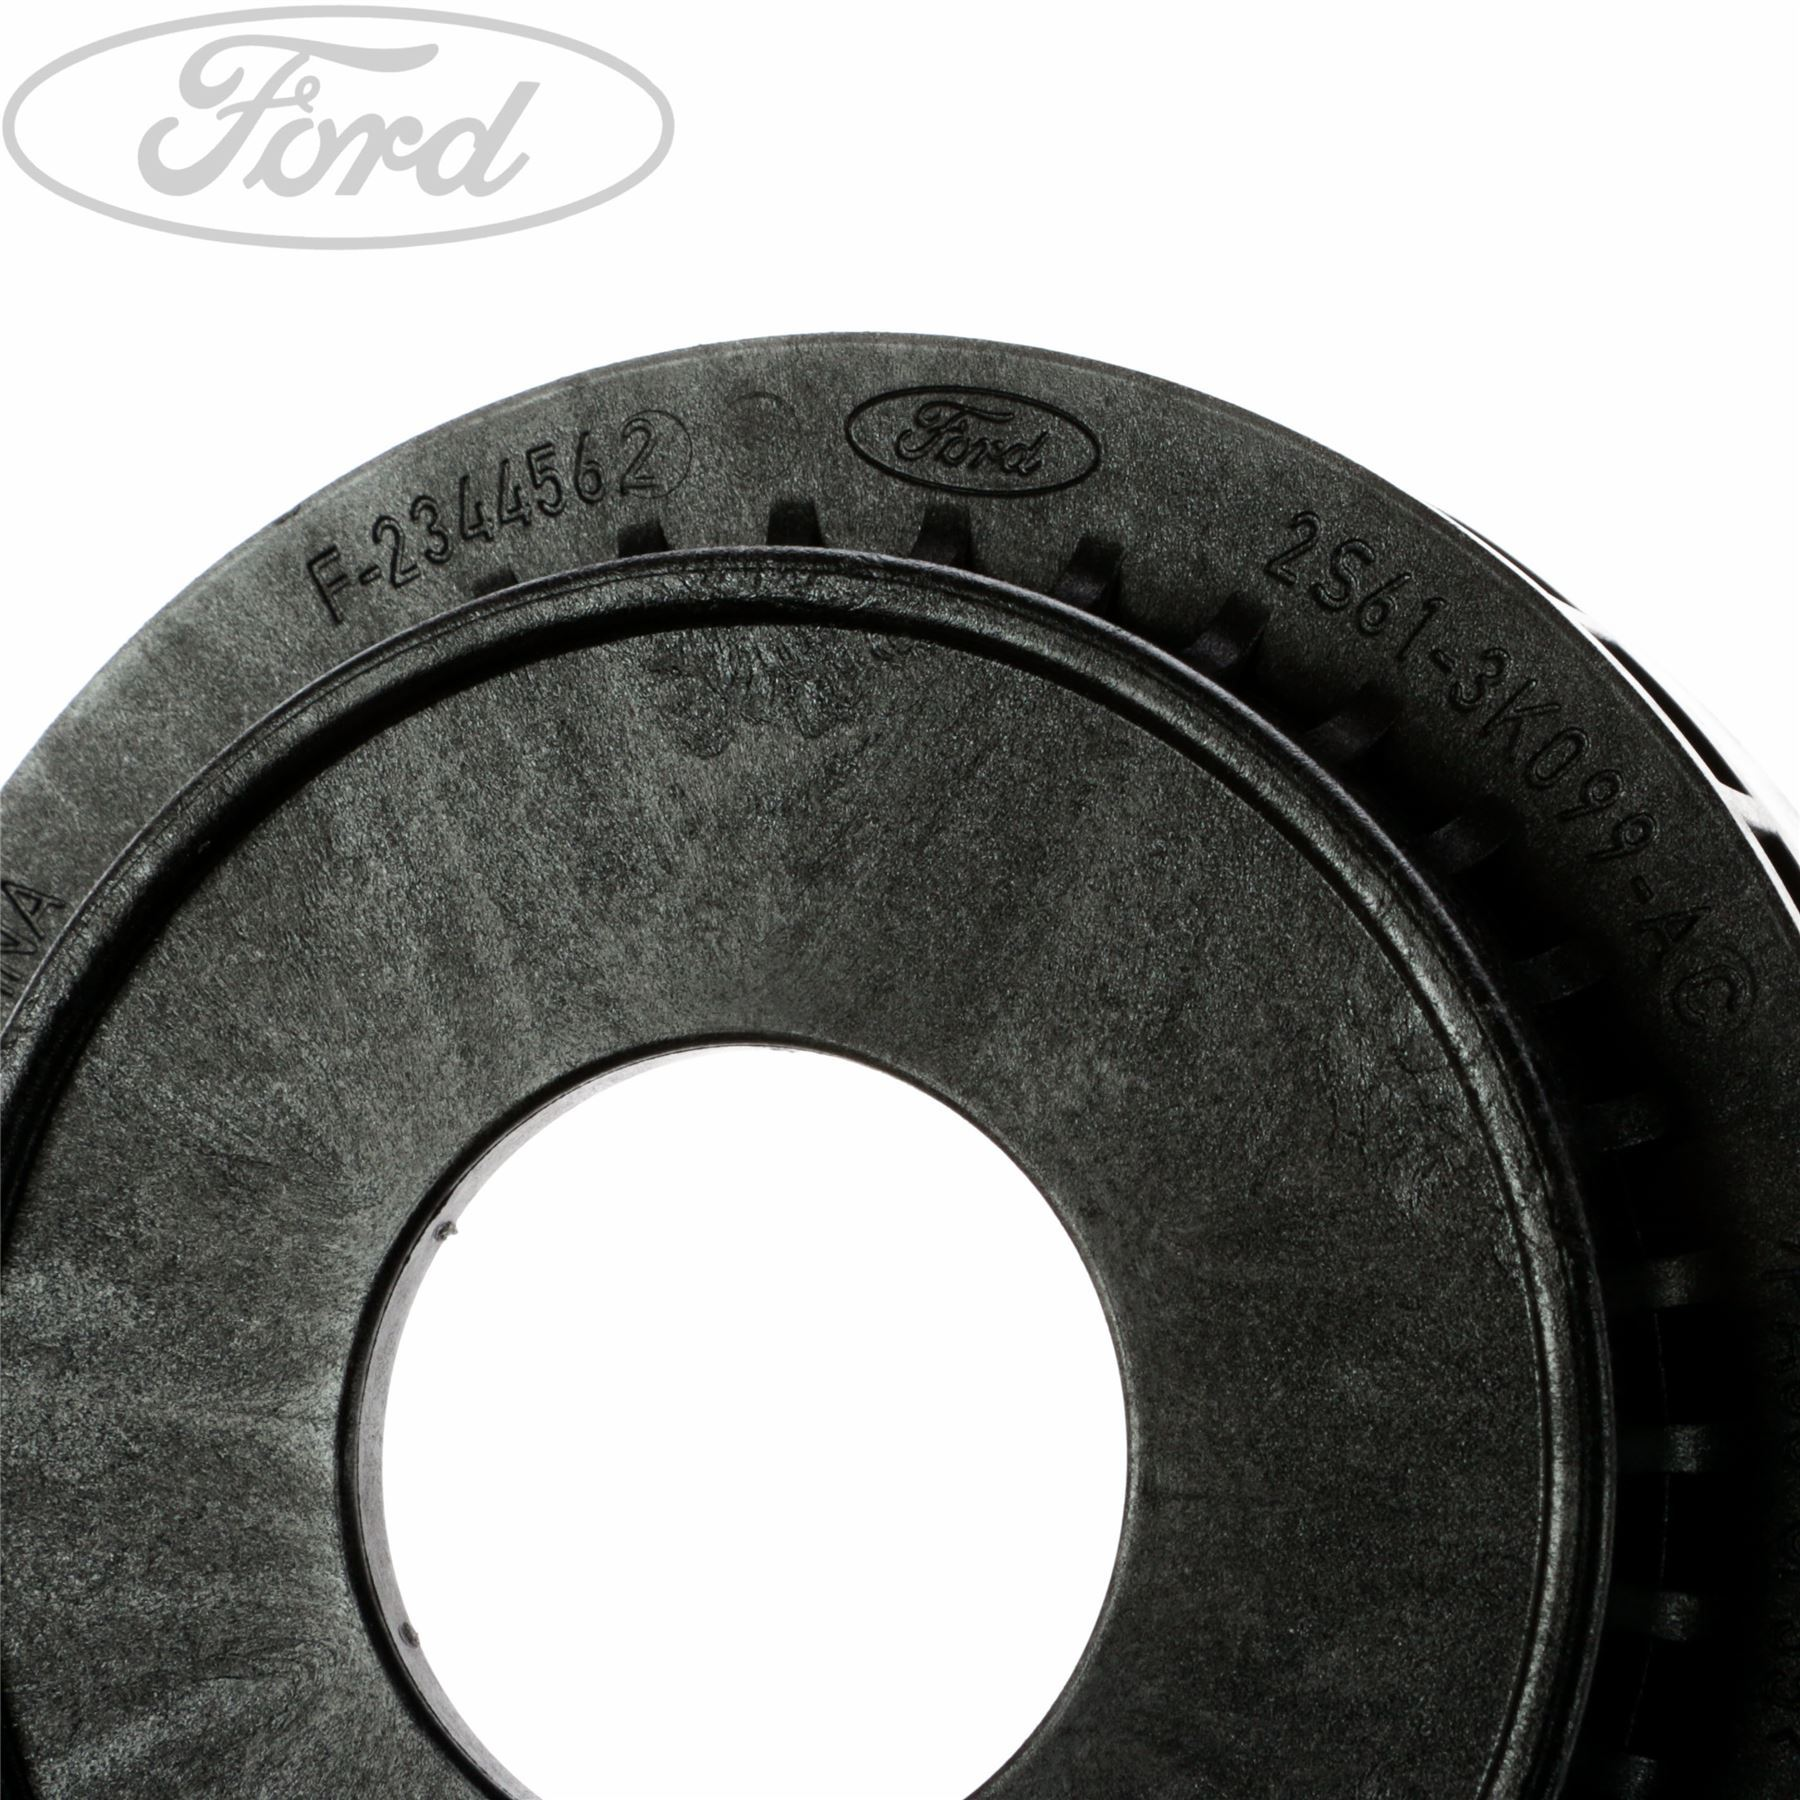 Ford Fiesta//st//Fusion NEW Front strut top  Bearing  1198235 Genuine part